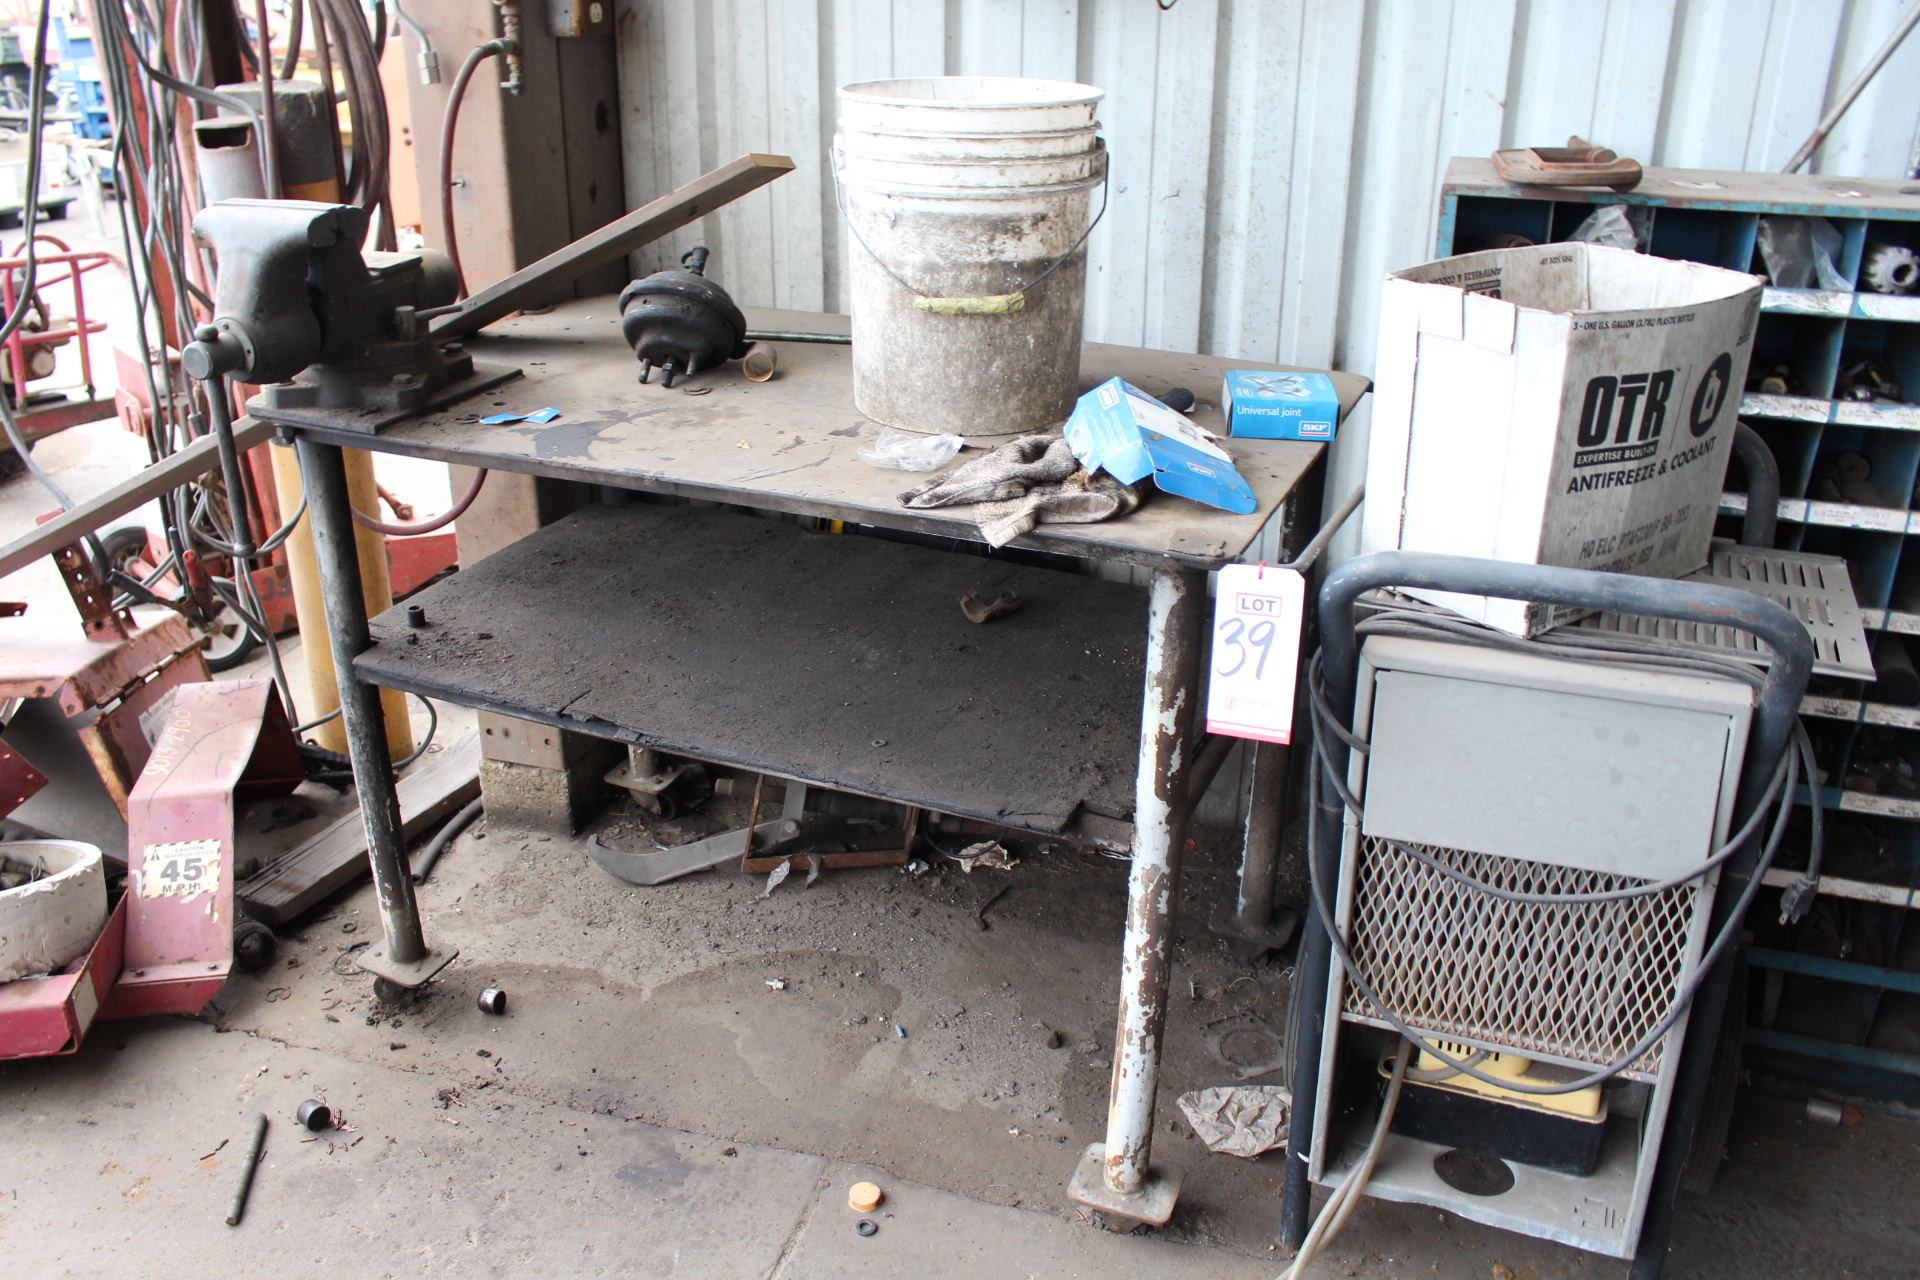 """Lot 39 - ***VOID*** LOT - WELDING TABLE, 48"""" X 29"""", W/ 6-1/2"""" BENCH VISE, DEHUMIDIFIER, OUT OF SERVICE"""